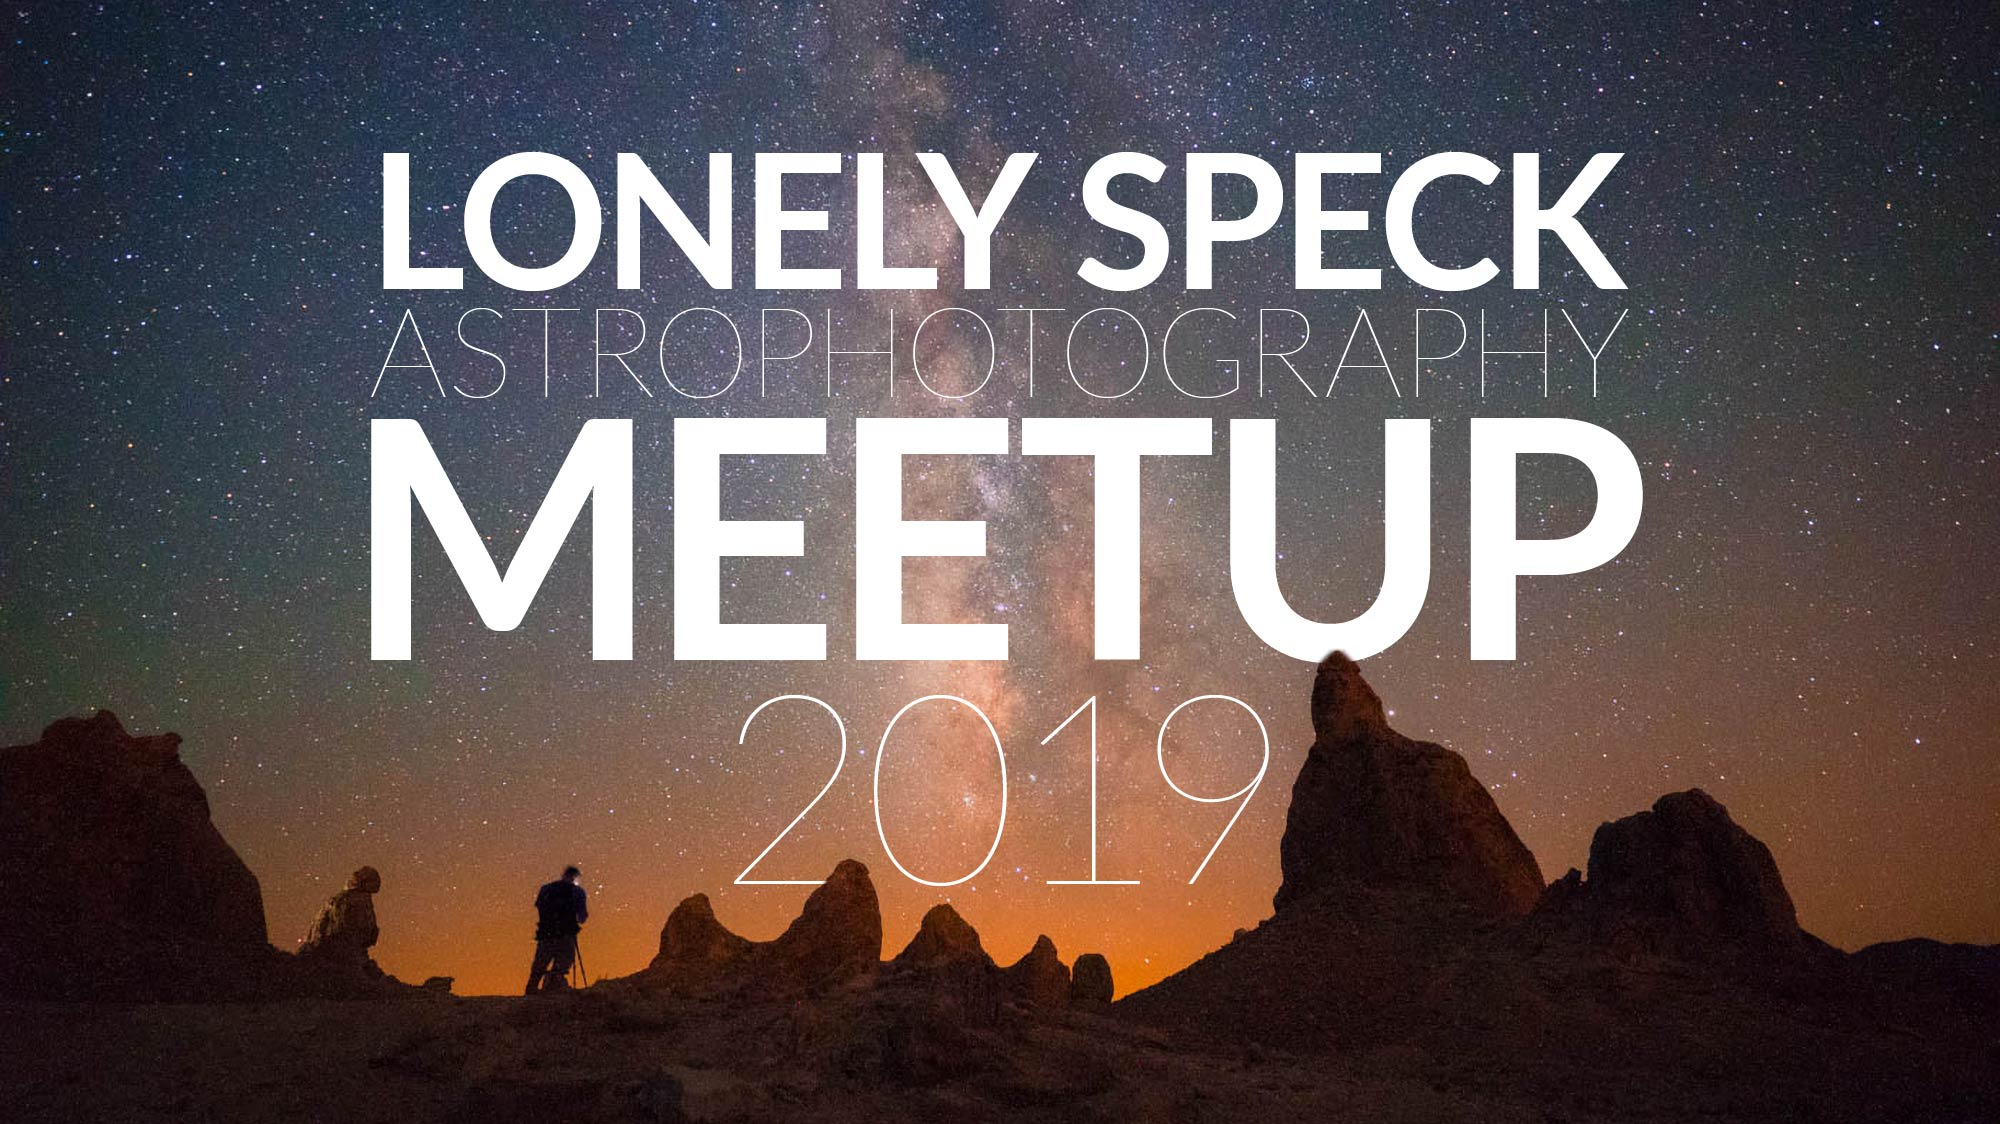 October 19, 2019: Lonely Speck Astrophotography Meetup at Trona Pinnacles, California